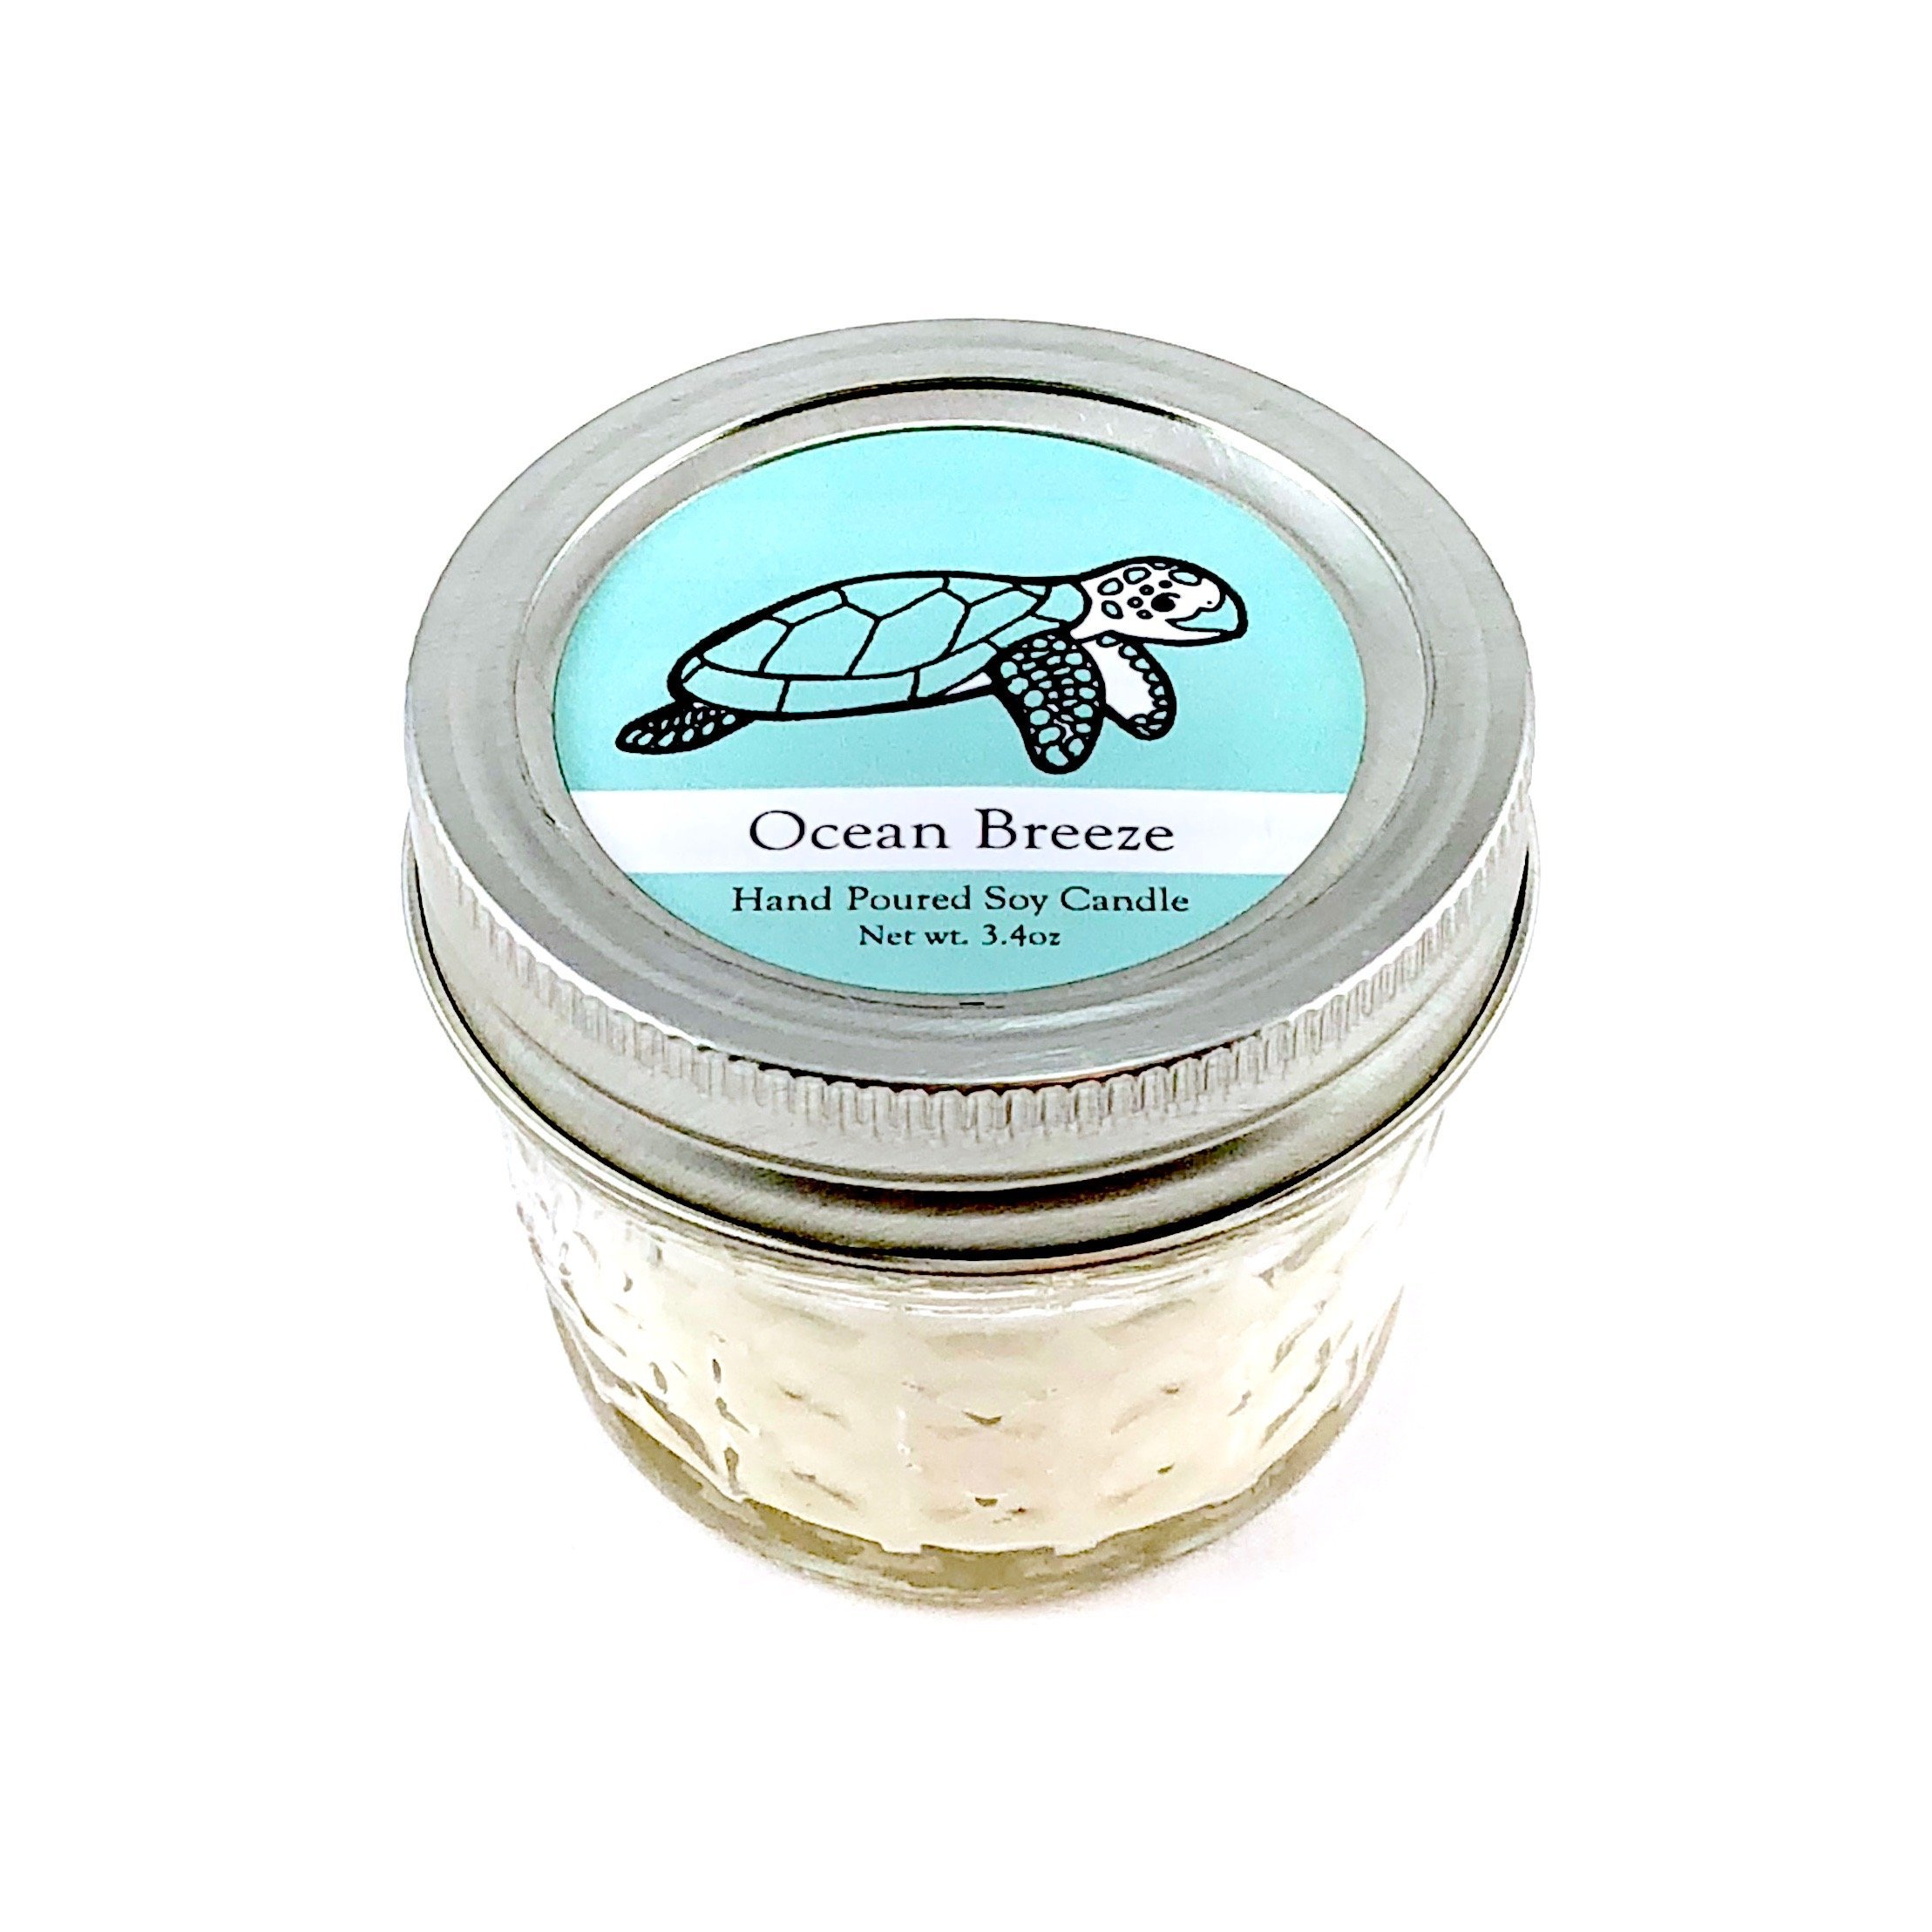 Sea Turtle Conservation Candle - Ocean Breeze Scent | Wildlife Conservation All-Natural Vegan Soy Candle